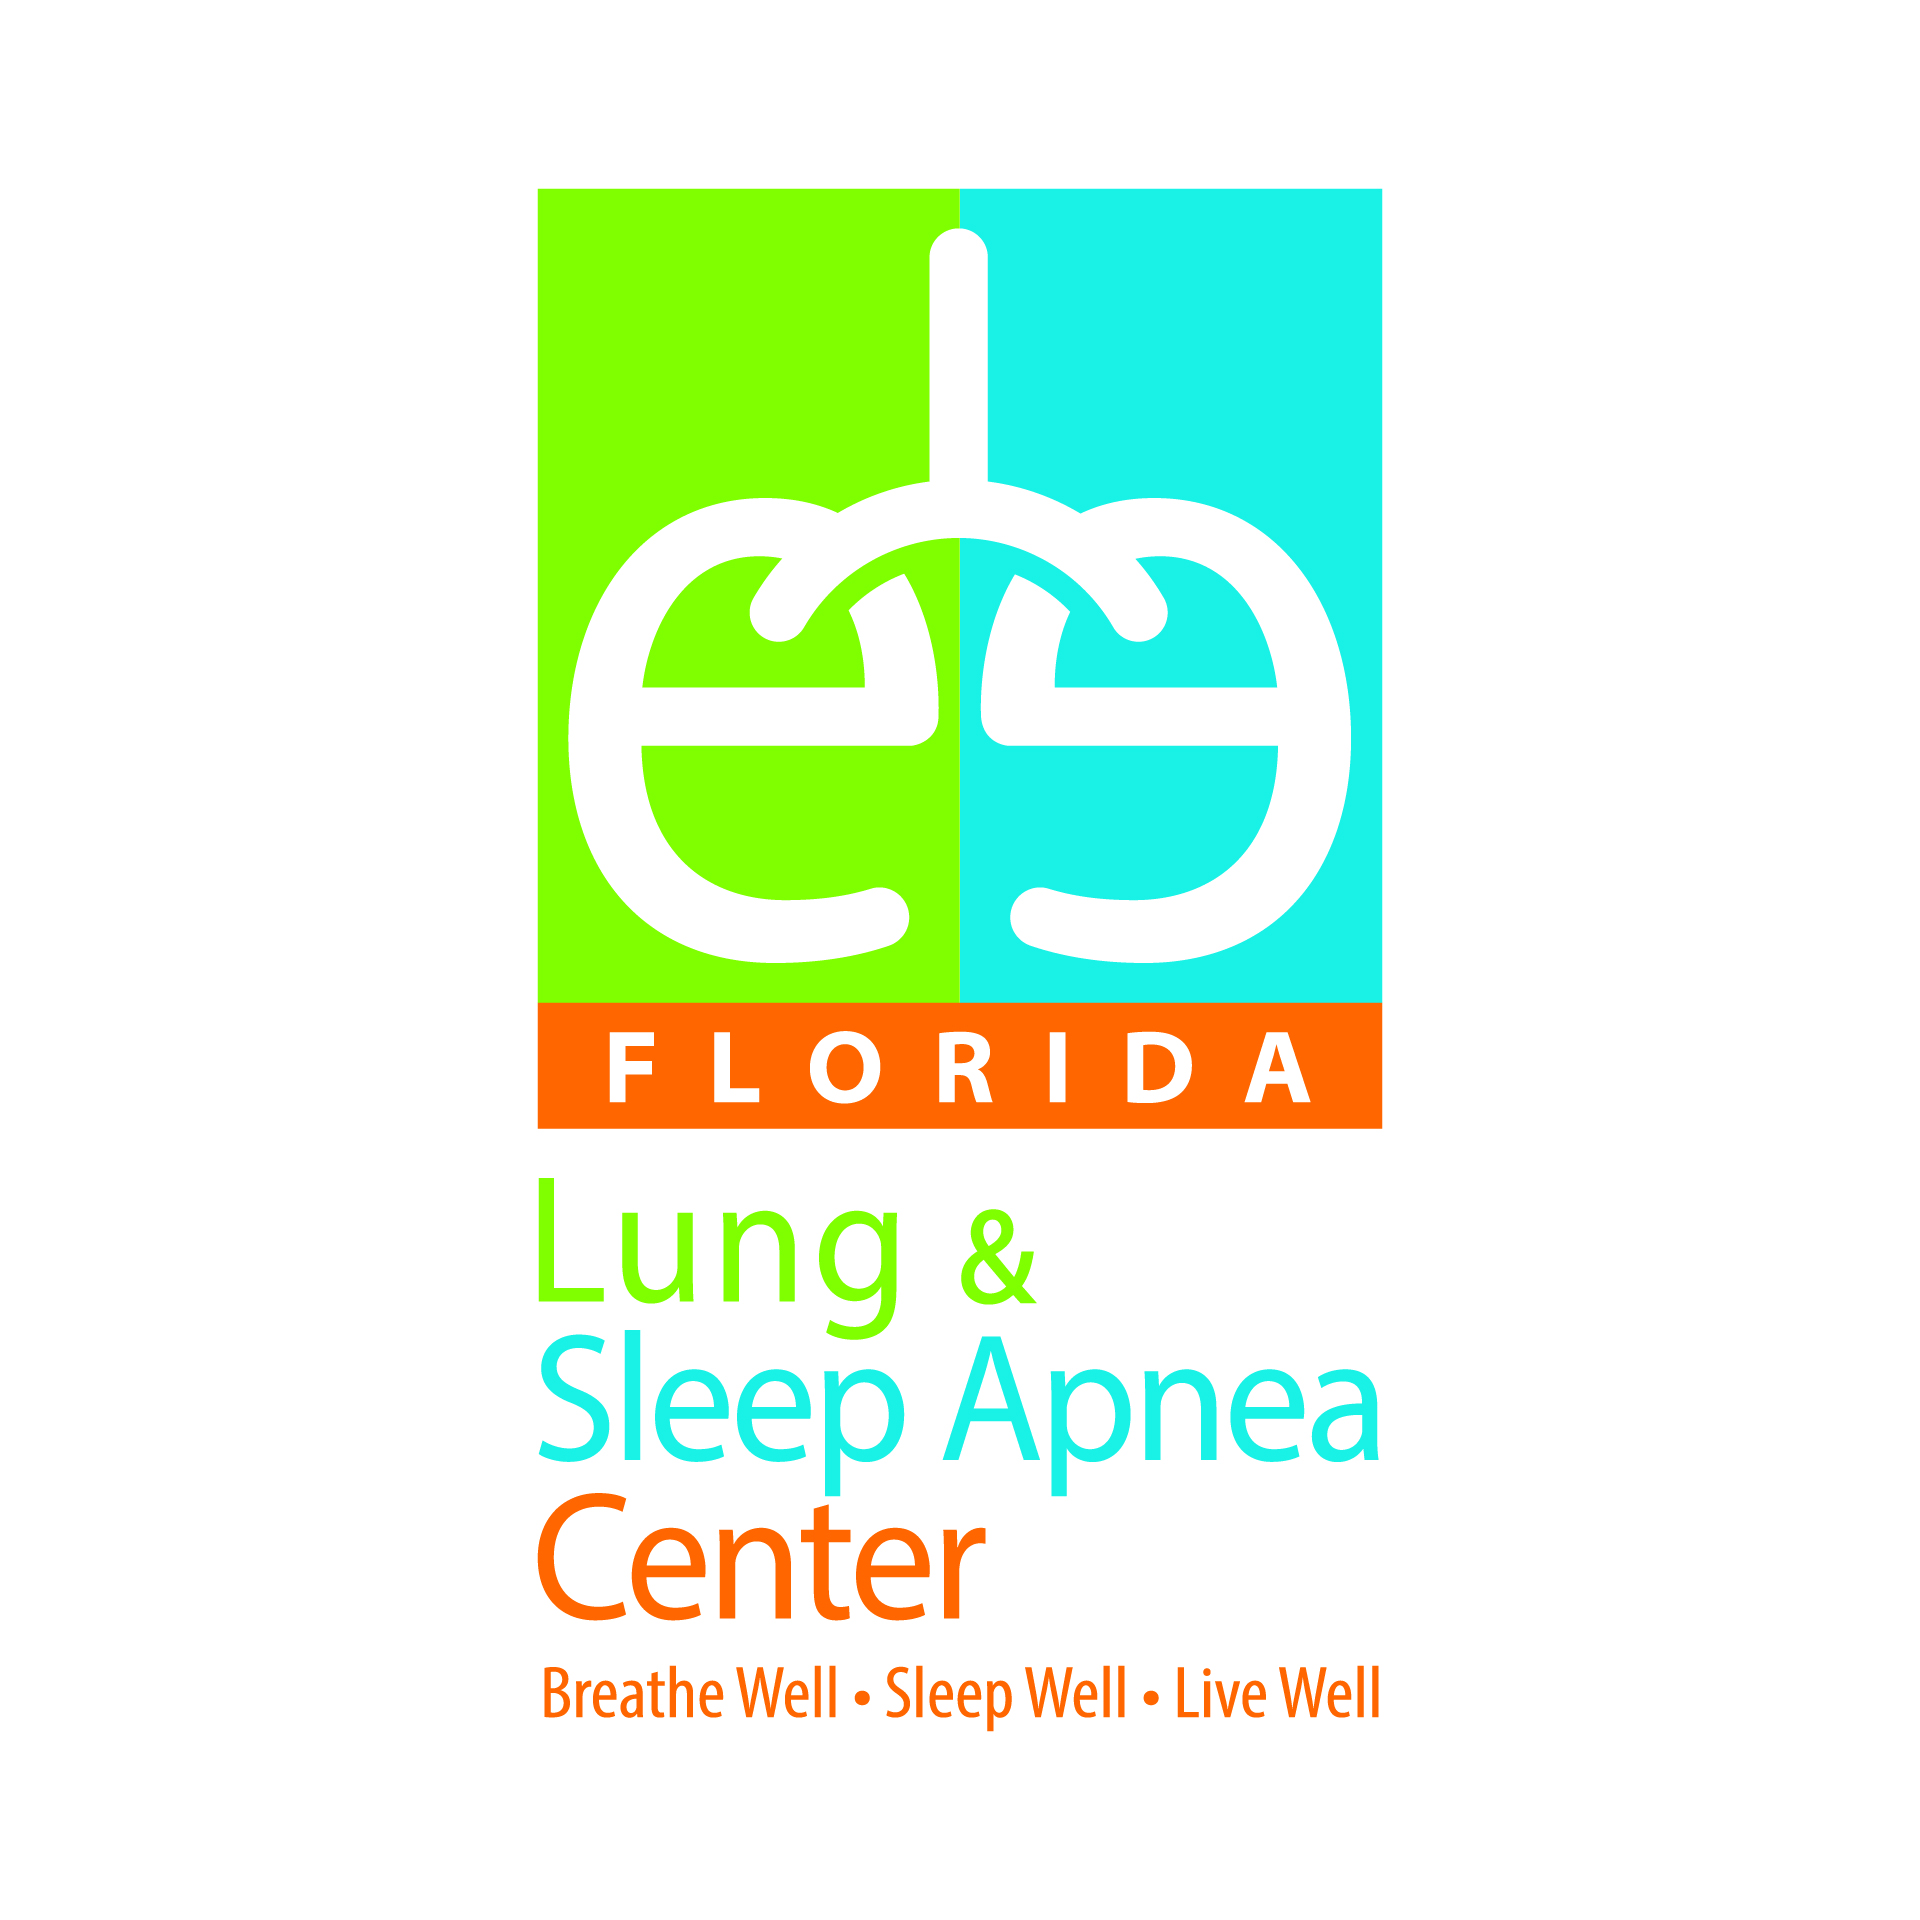 Diseño de Identidad Visual y Logotipo para la marca Lung & Sleep Apnea Center